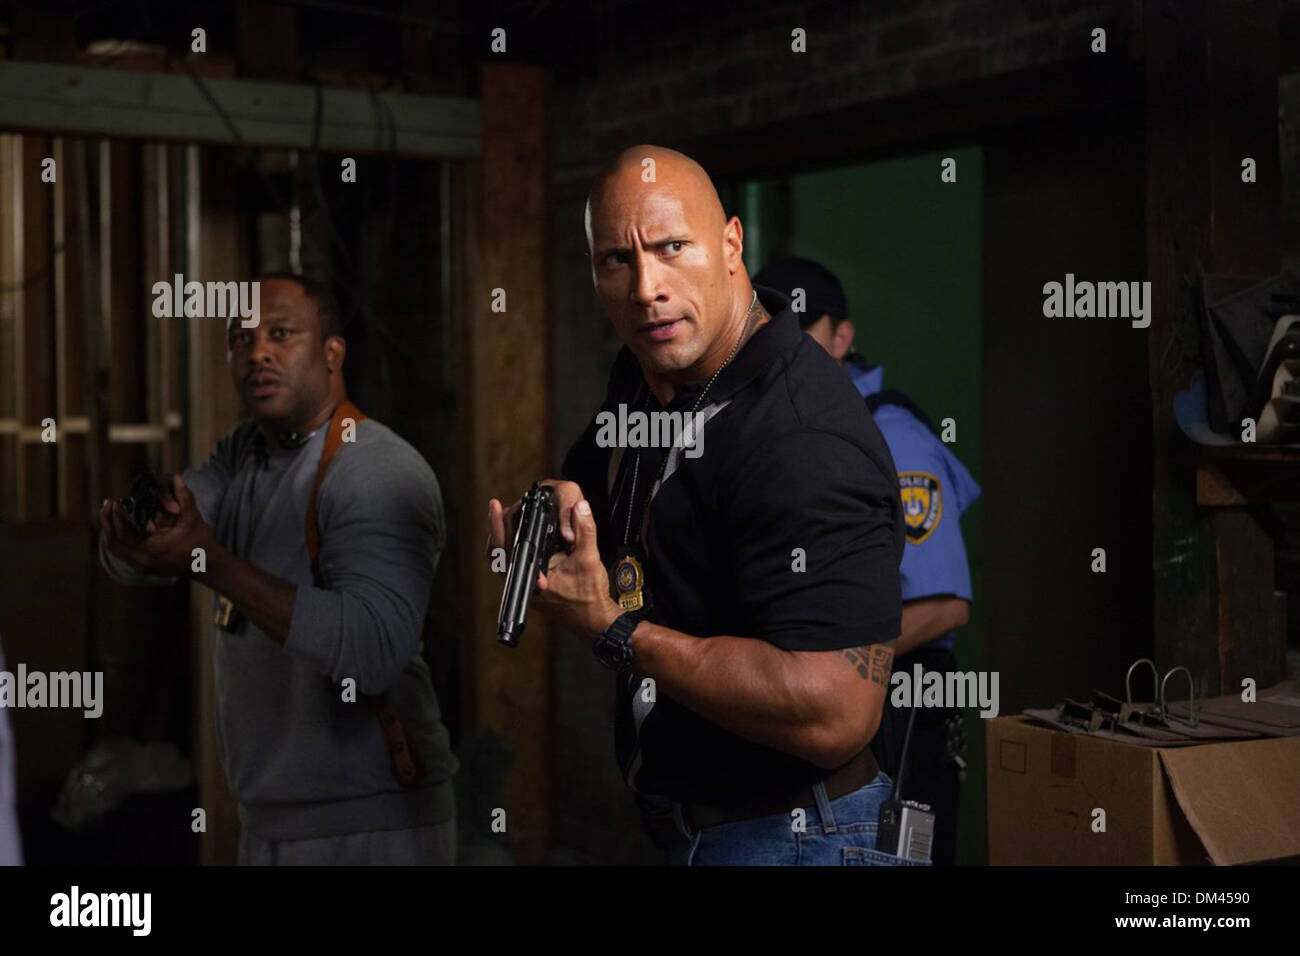 EMPIRE STATE (2013) fortunato Johnson, Dwayne Johnson DITO MONTIEL (DIR) RACCOLTA MOVIESTORE LTD Immagini Stock